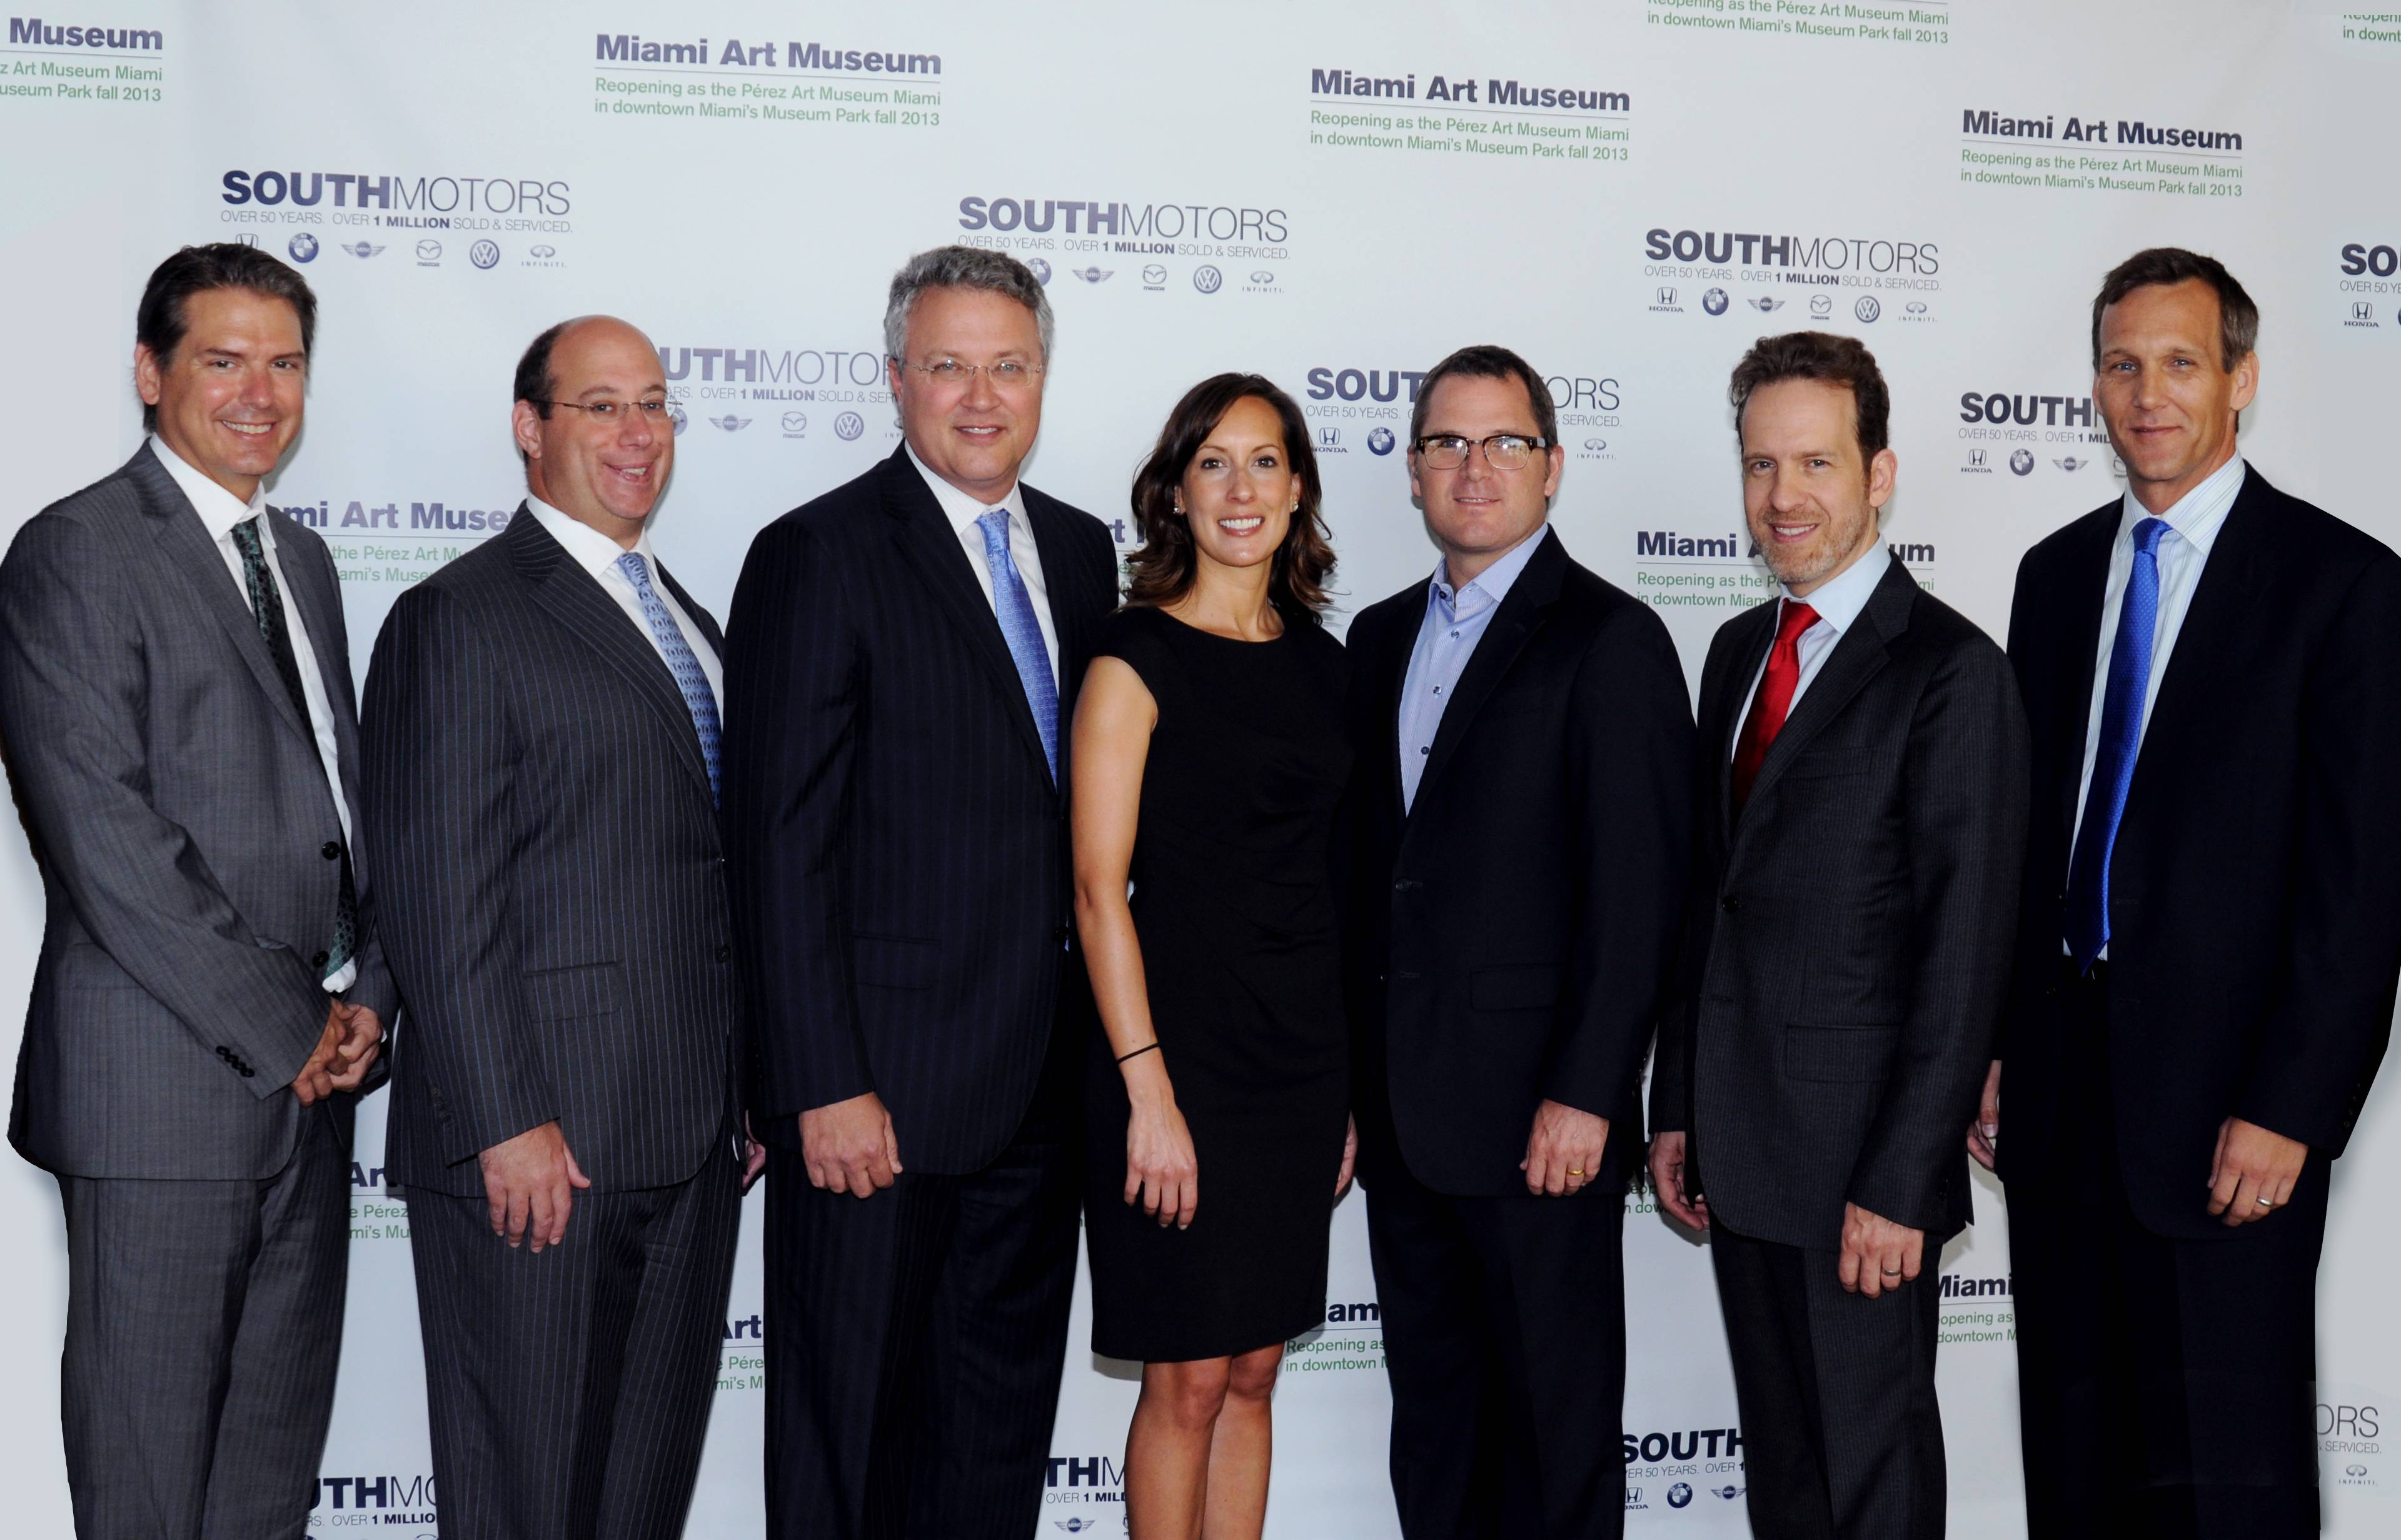 8. Corporate Luncheon Committee –  Jeffrey Gutchess, David Barkus, Pedro A. Fernandez, Sarah Johnson, Jack Chadam, Daniel Novela, Alex Espenkotter - JC